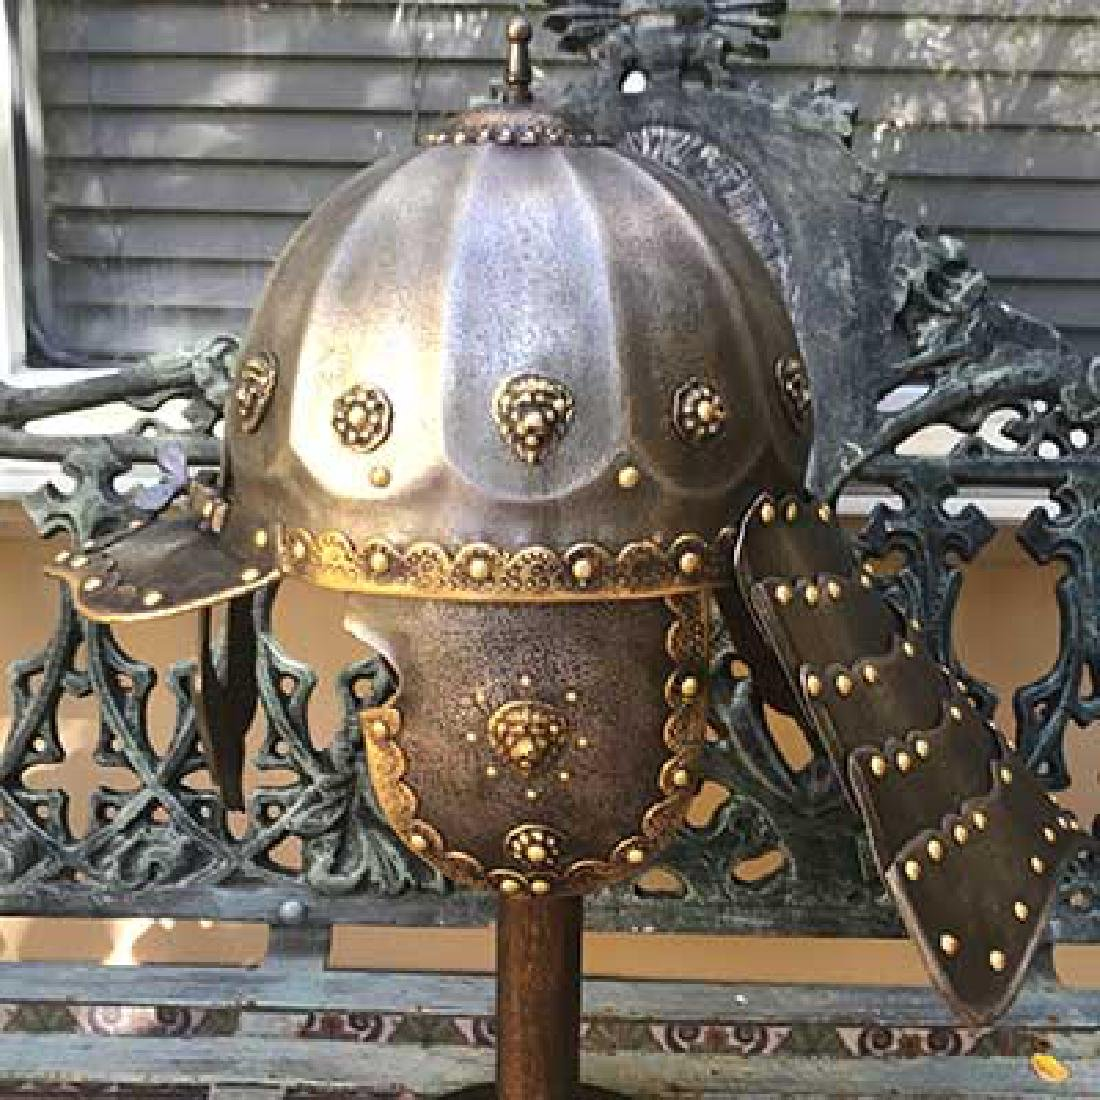 Highly Decorated Polish Zischagge / Lobstertail Helmet